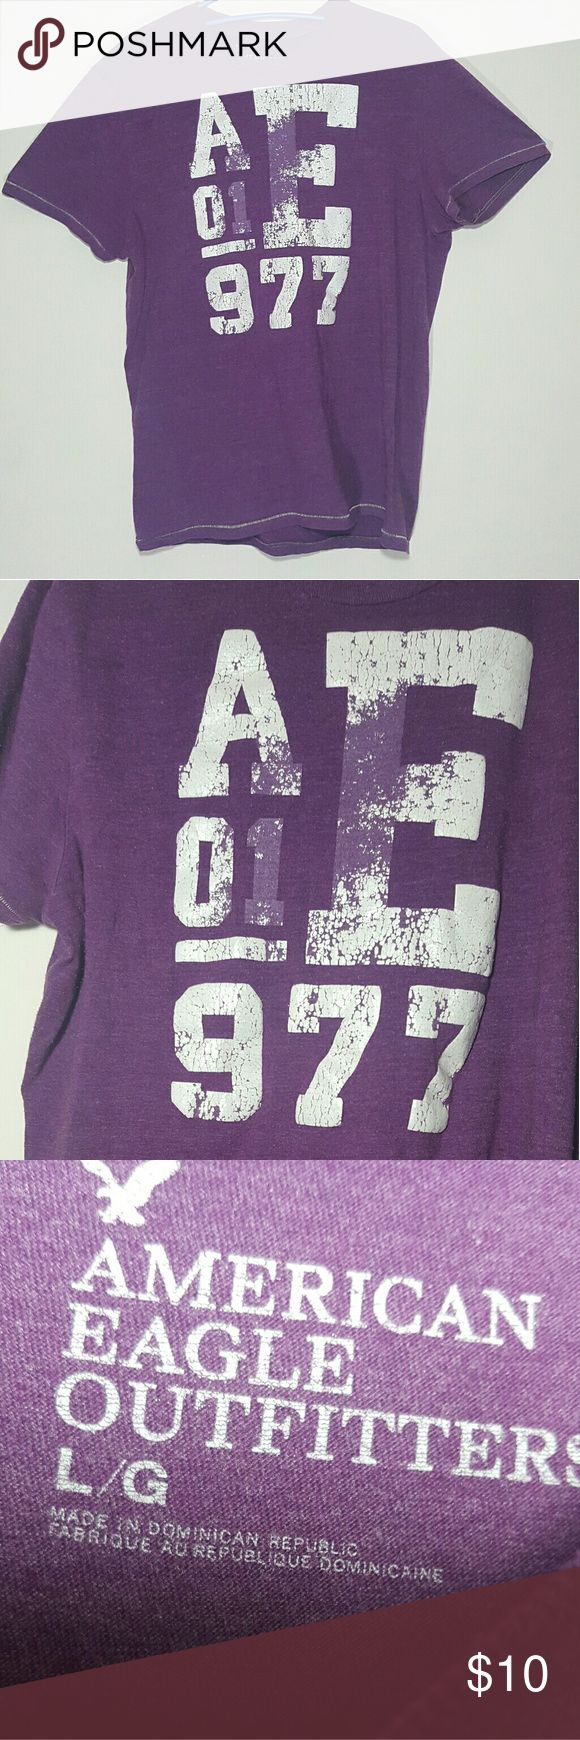 American Eagle Outfitters distressed shirt L mens American Eagle Outfitters shirt distressed purple/White Size L  Great condition lightly worn American Eagle Outfitters Shirts Tees - Short Sleeve